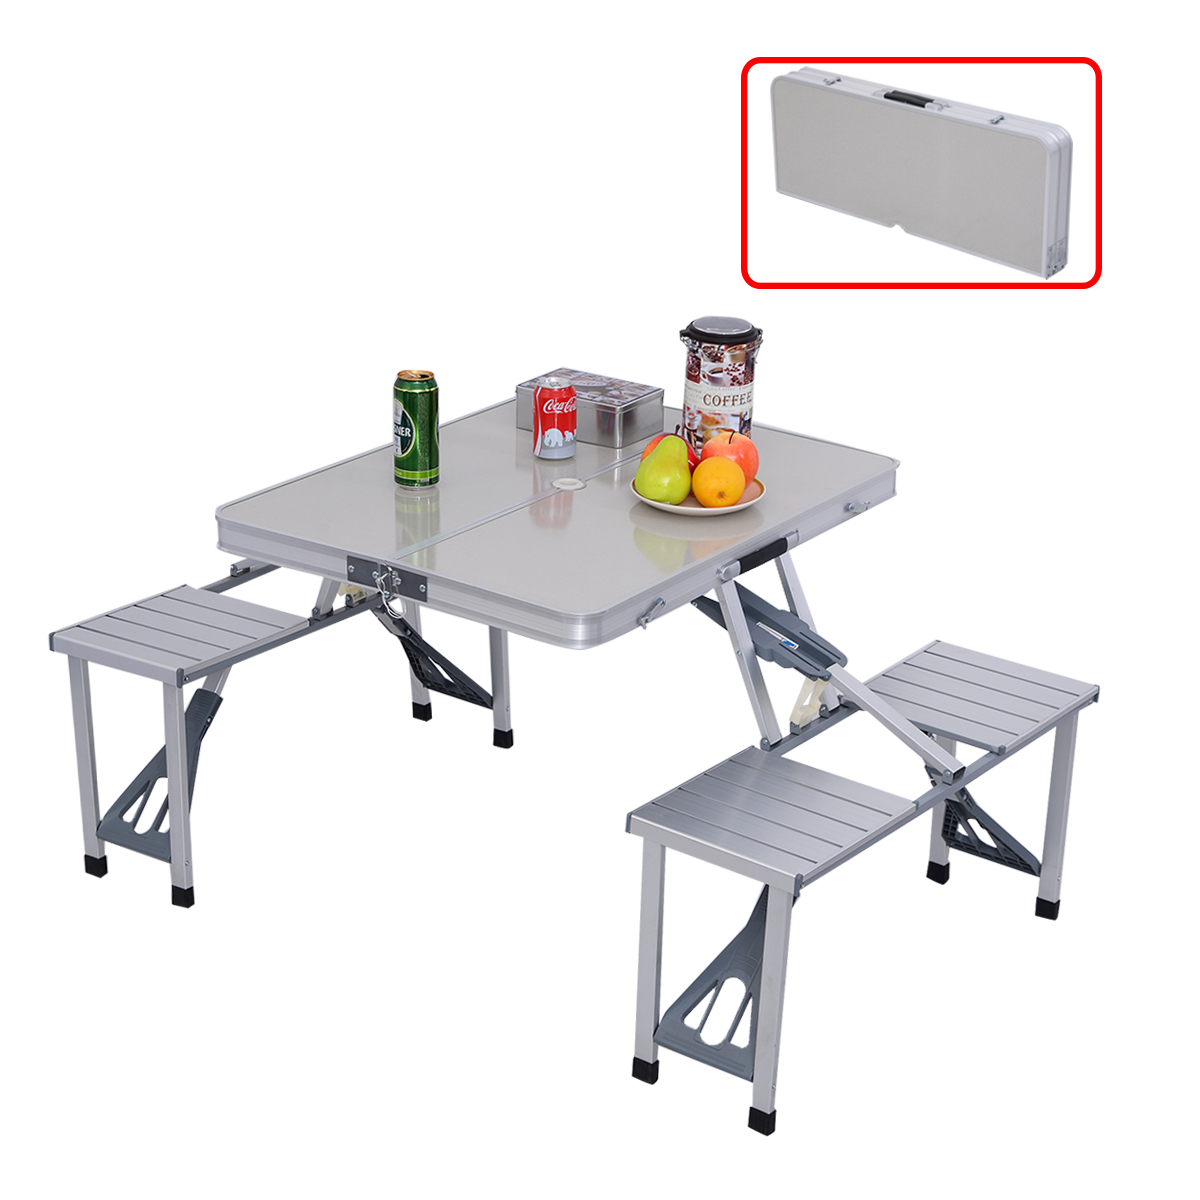 Costway Outdoor Garden Aluminum Portable Folding Camping Picnic Table W/ 4  Seats   Walmart.com